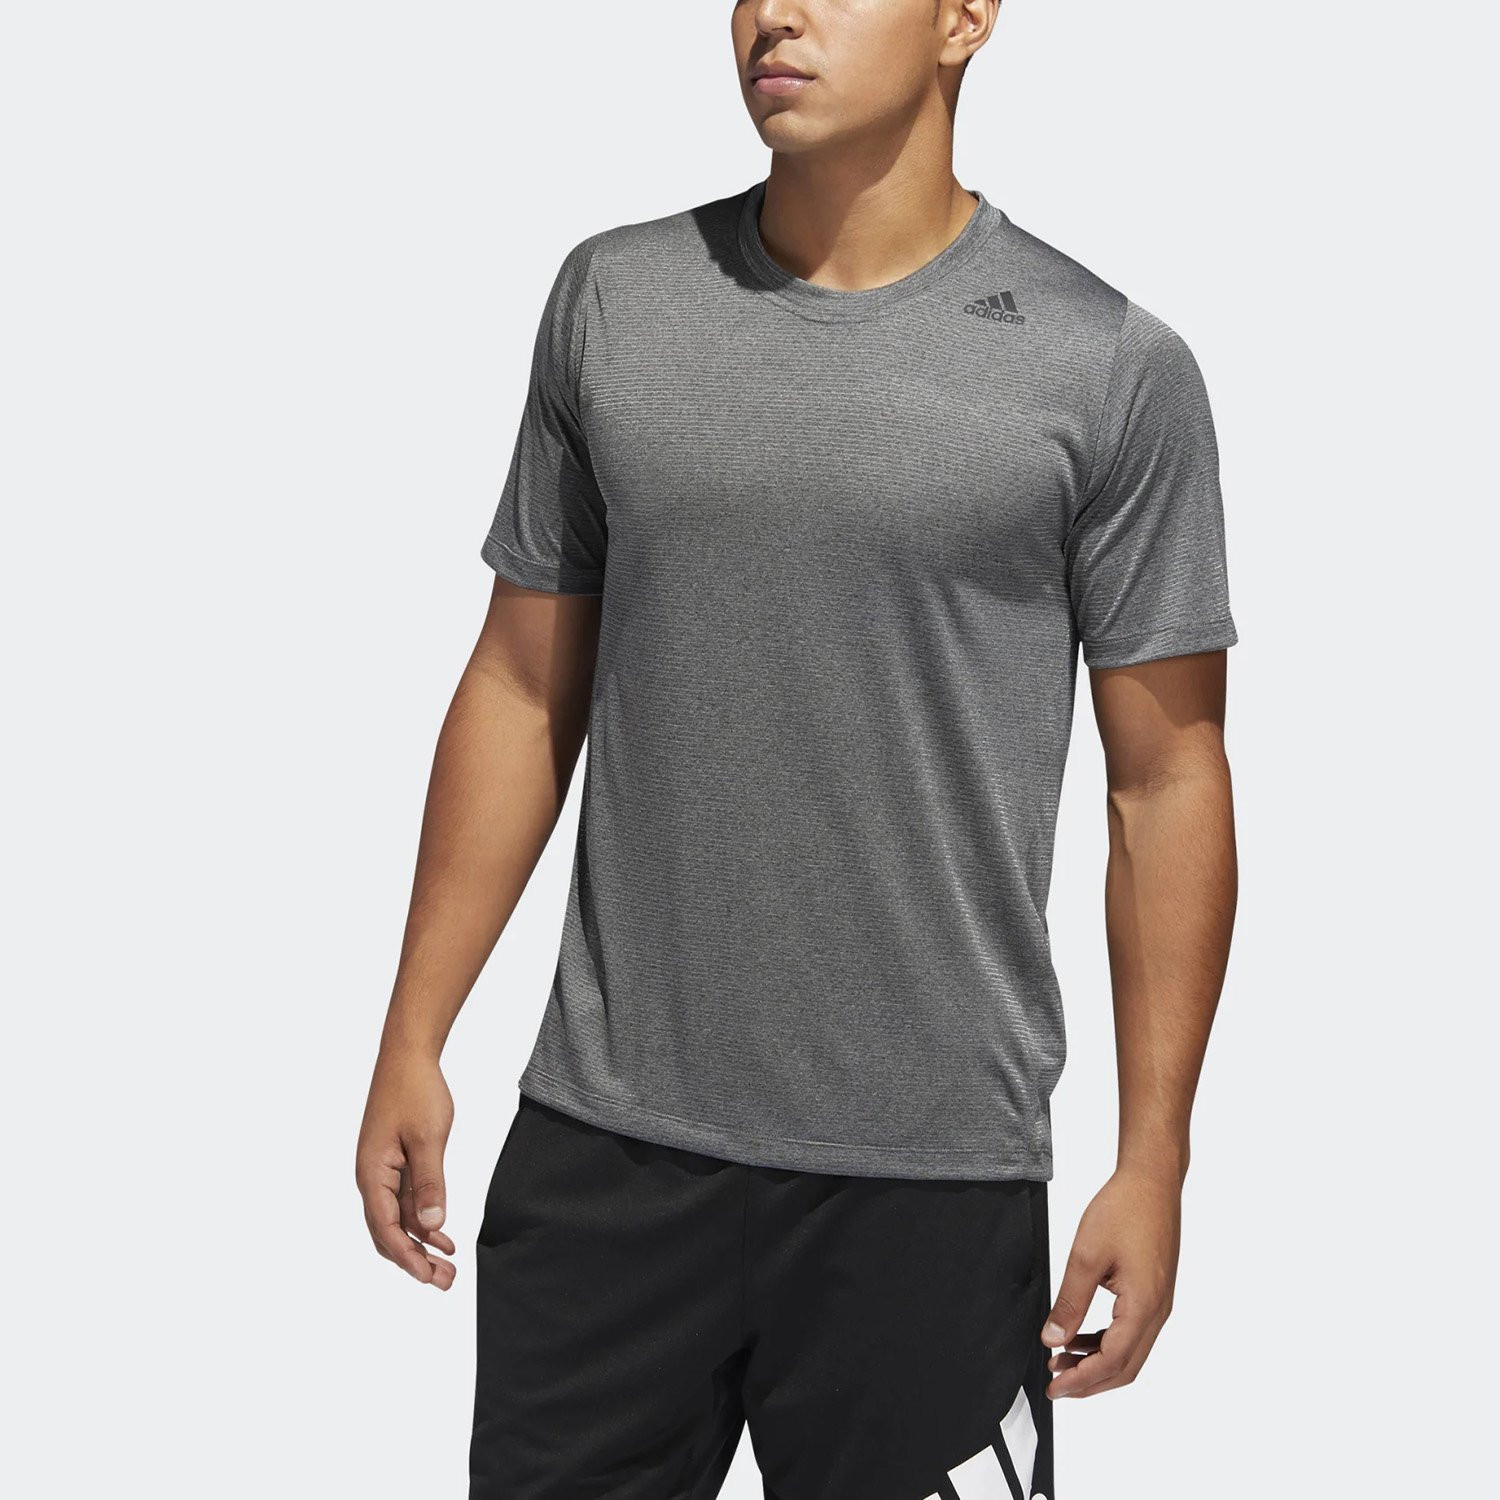 adidas FreeLift Tech Climacool Fitted Tee (9000027721_38468)